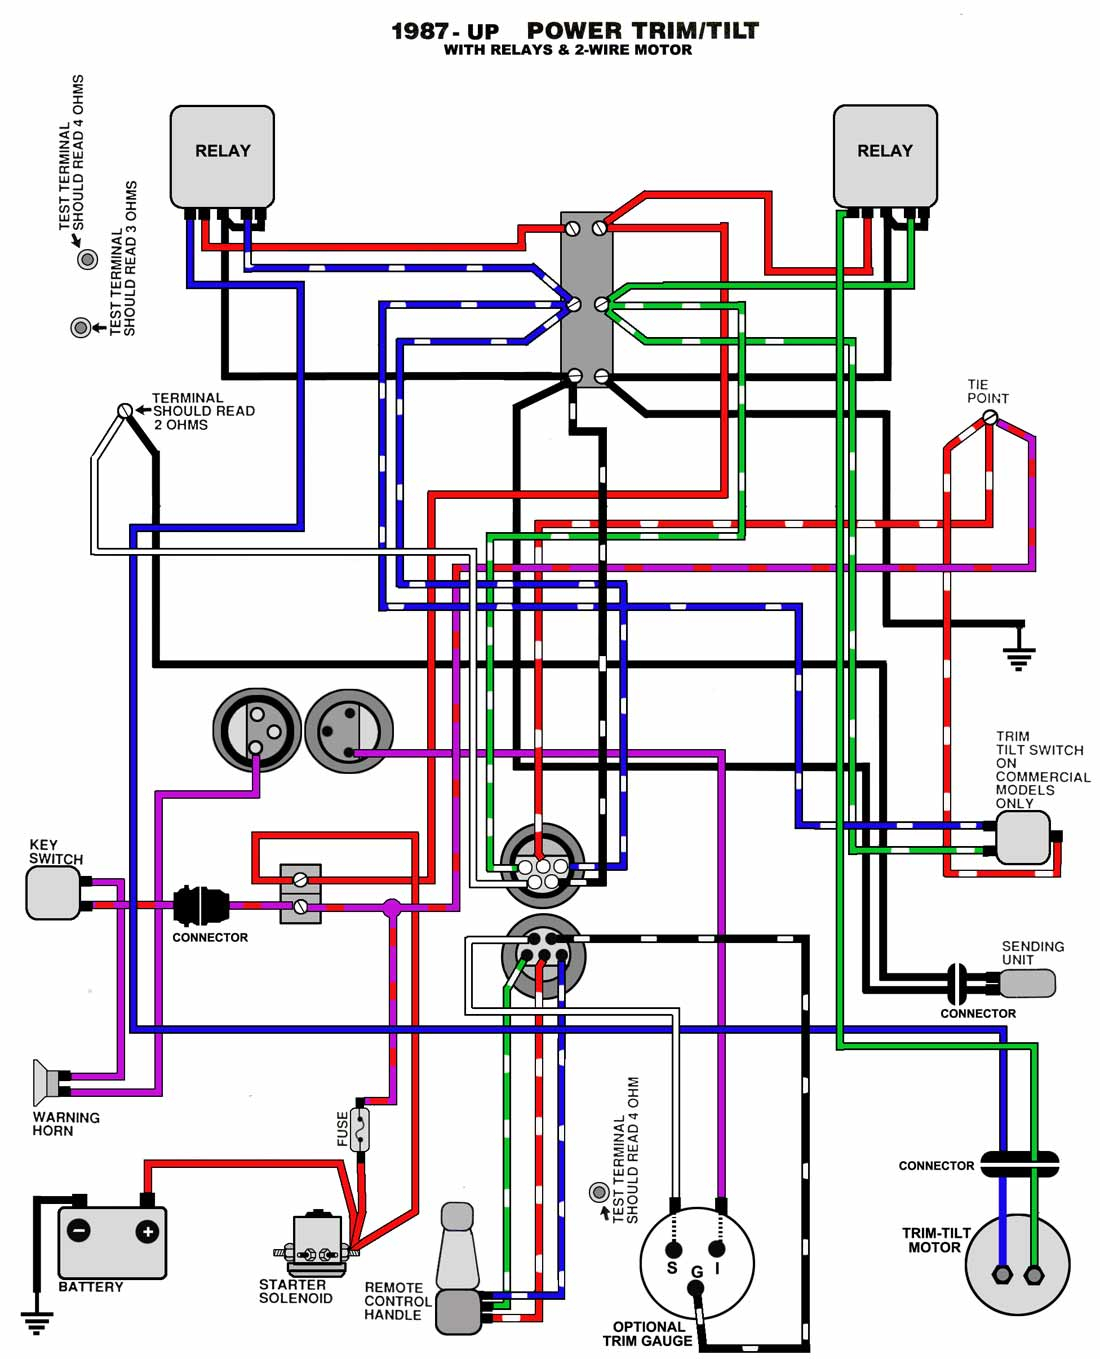 1995 mercury 60hp outboard ignition wiring harness diagram mercury mariner wiring  diagram 1997 mercury outboard motor